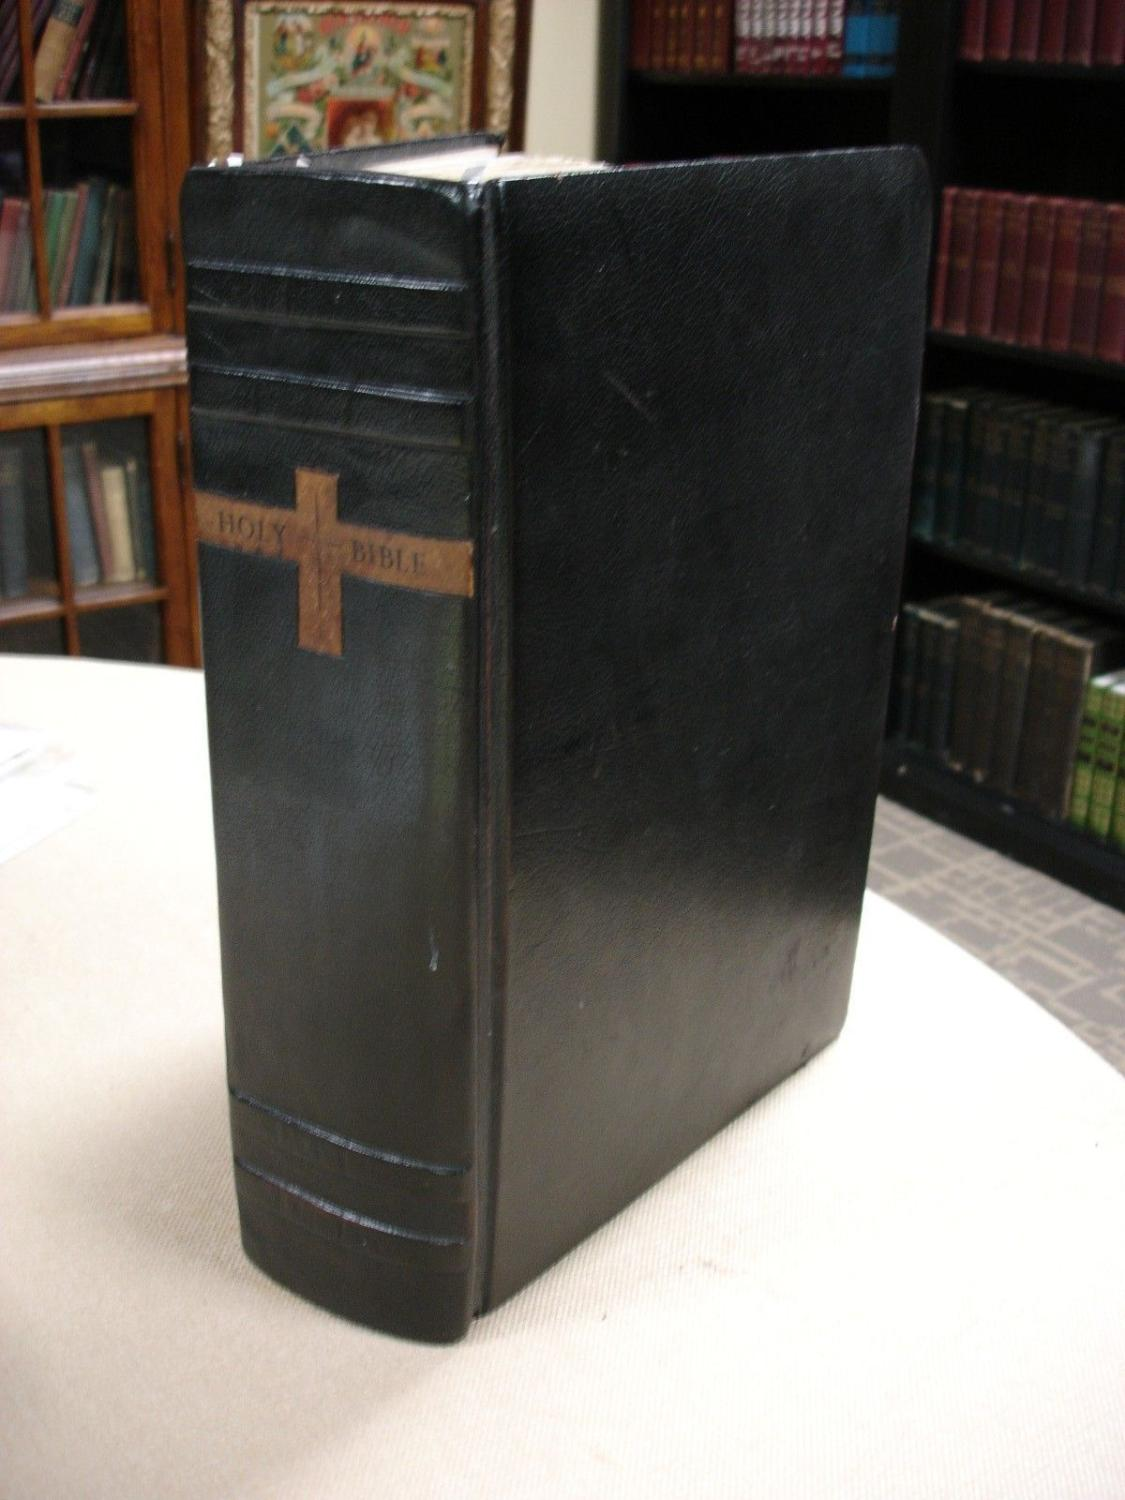 1588 Folio Bishops Bible - Holy Bible